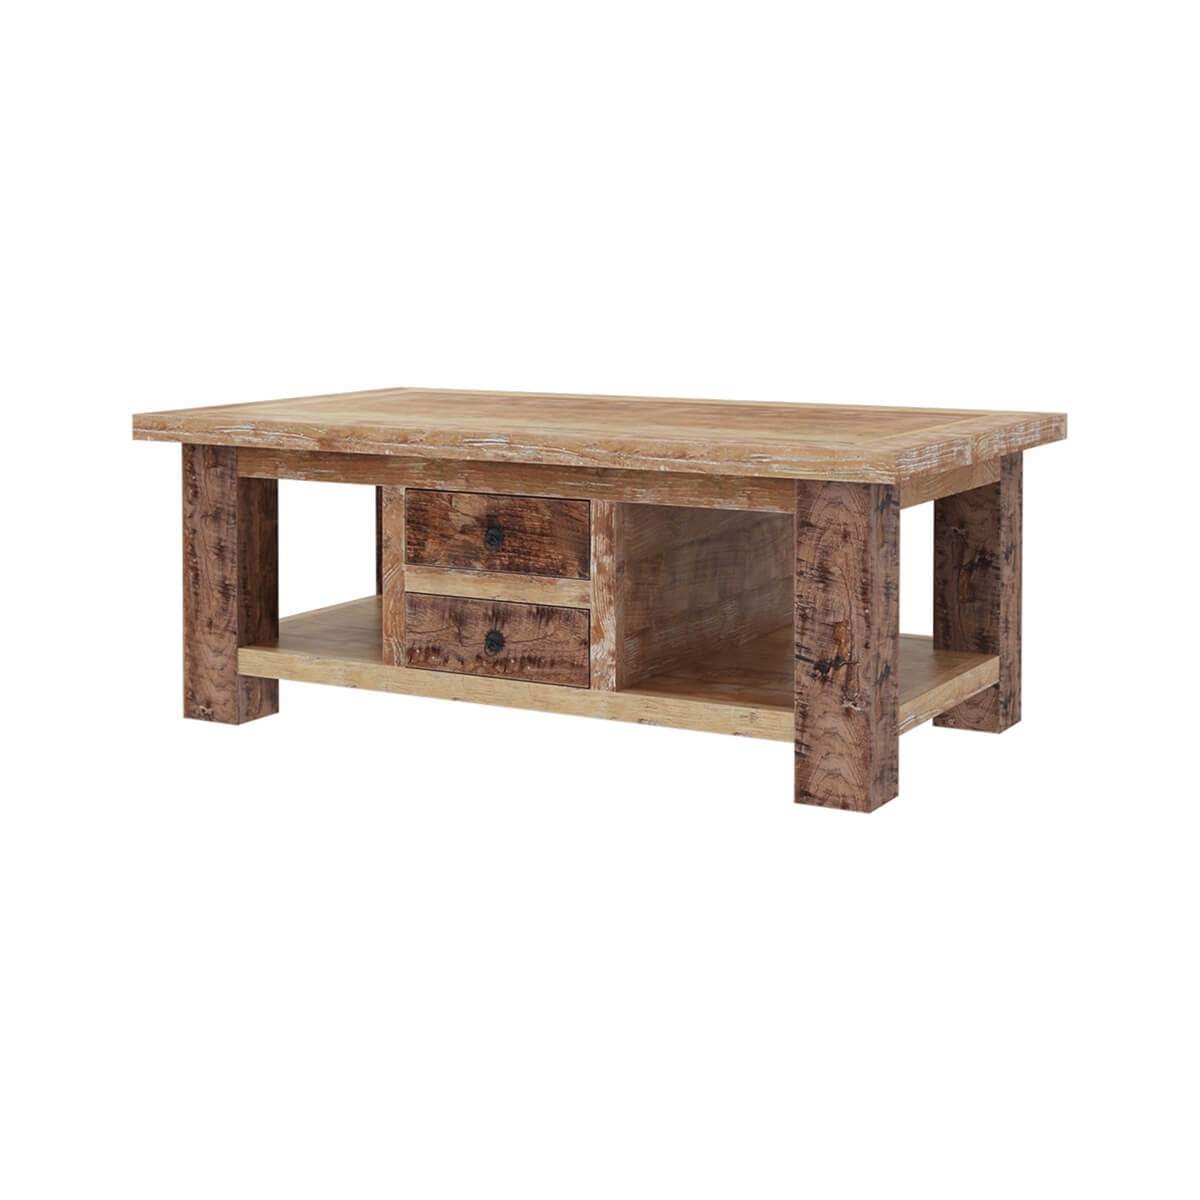 Britain Handcrafted Rustic Teak Wood 2 Drawer Coffee Table